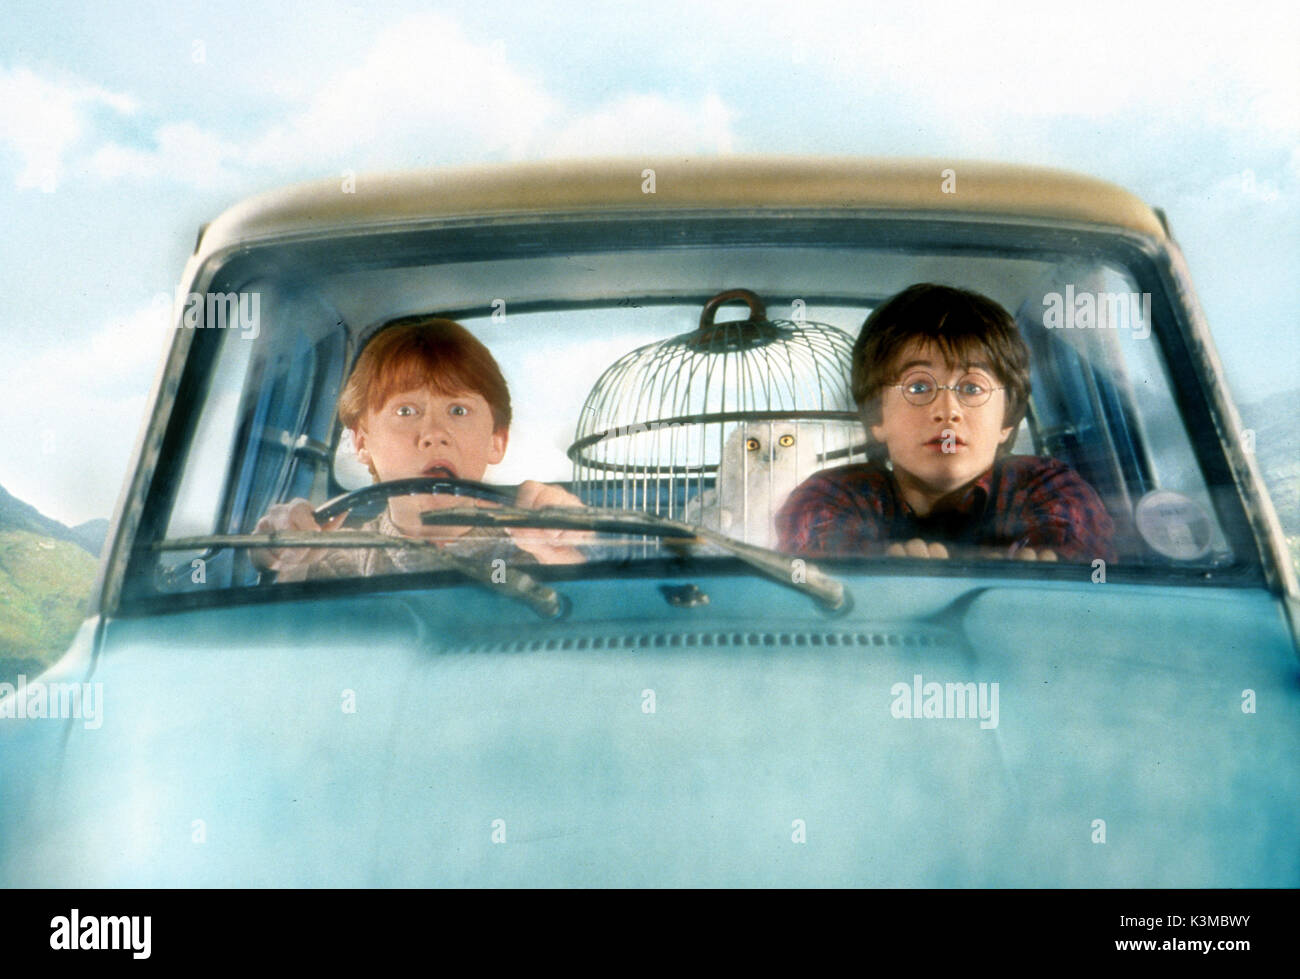 HARRY POTTER AND THE CHAMBER OF SECRETS [BR / US / GER 2002] [L-R] RUPERT GRINT as Ron Weasley, DANIEL RADCLIFFE as Harry Potter     Date: 2002 - Stock Image